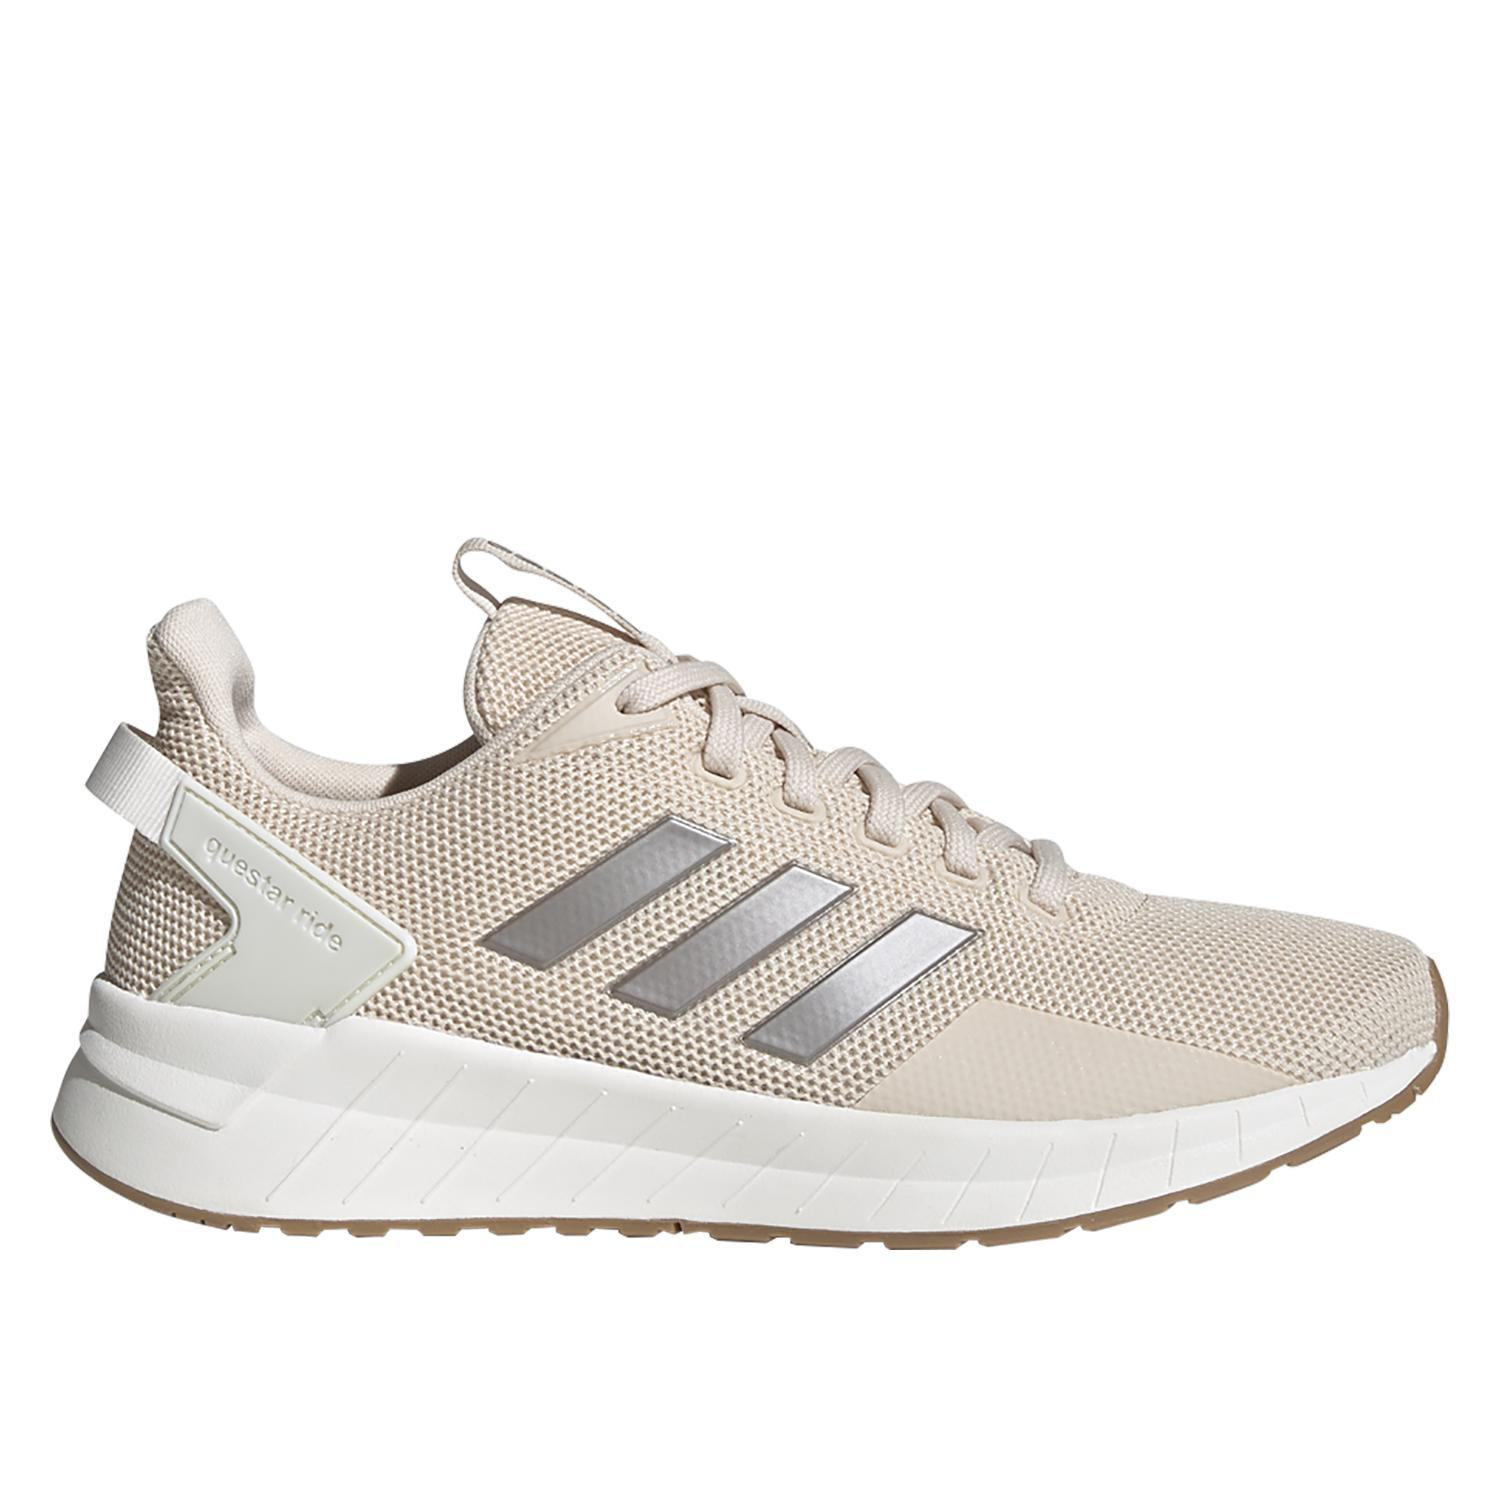 adidas Questar Ride Women's Running Shoe